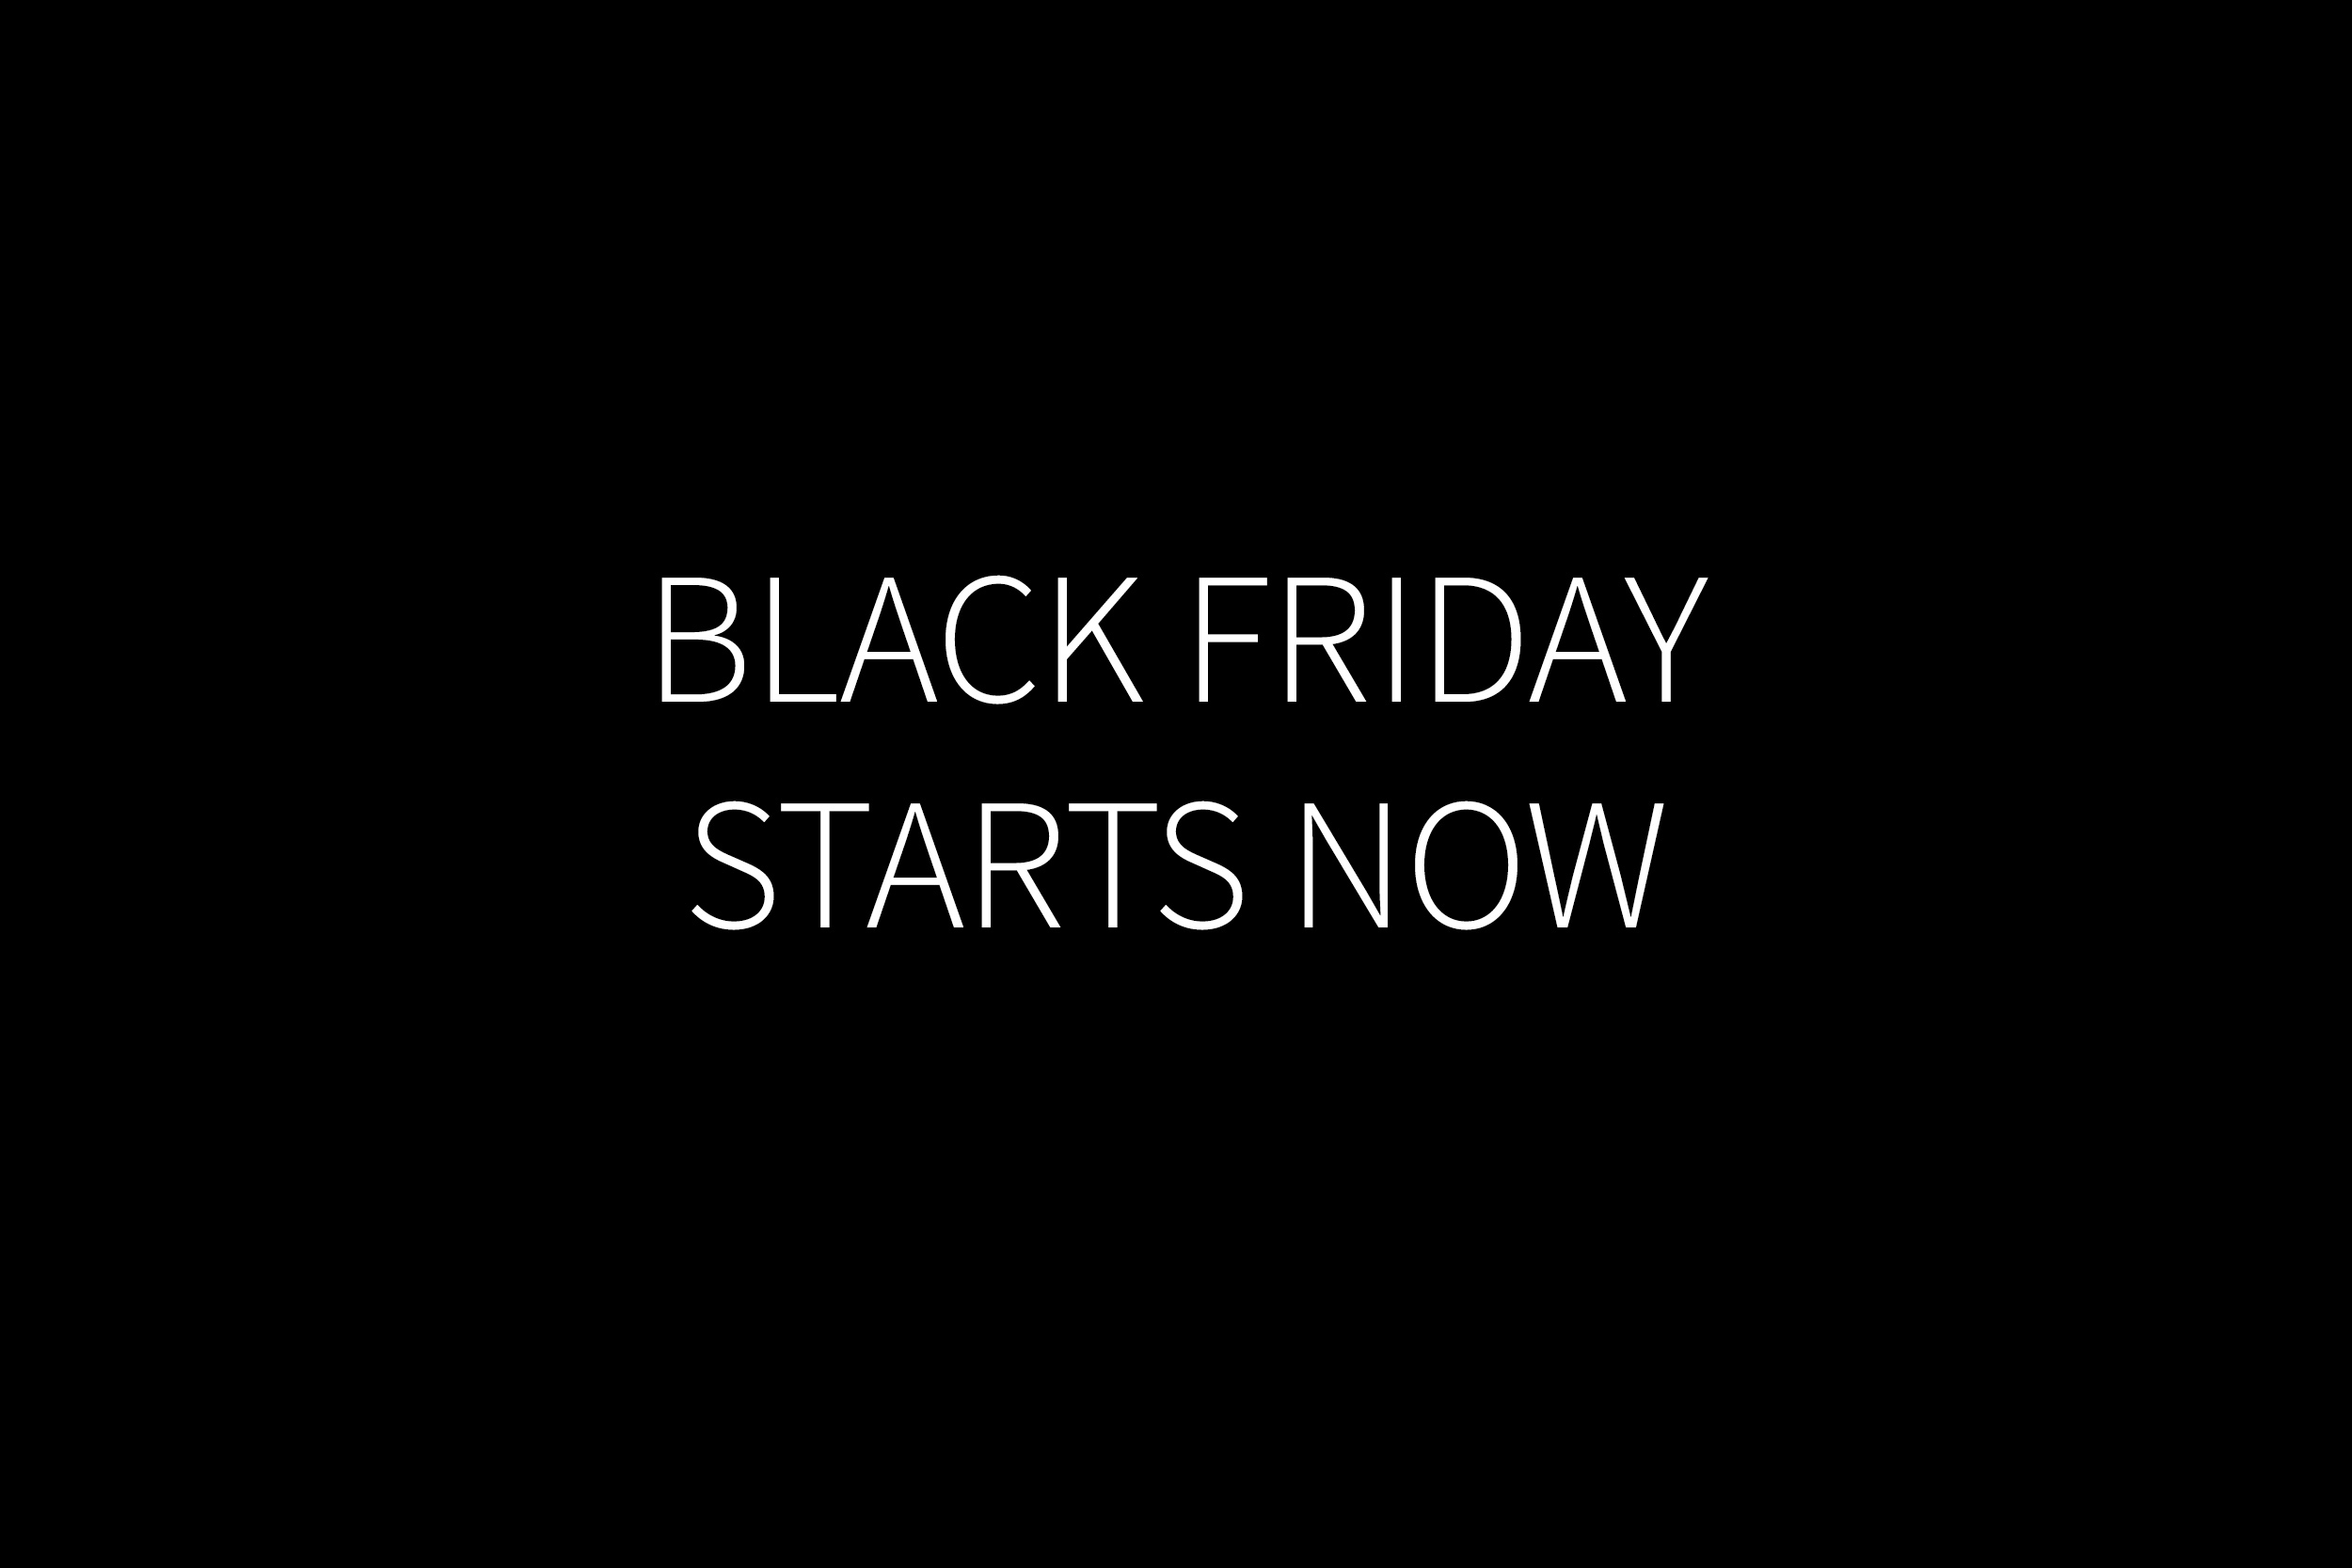 Black Friday Starts Now